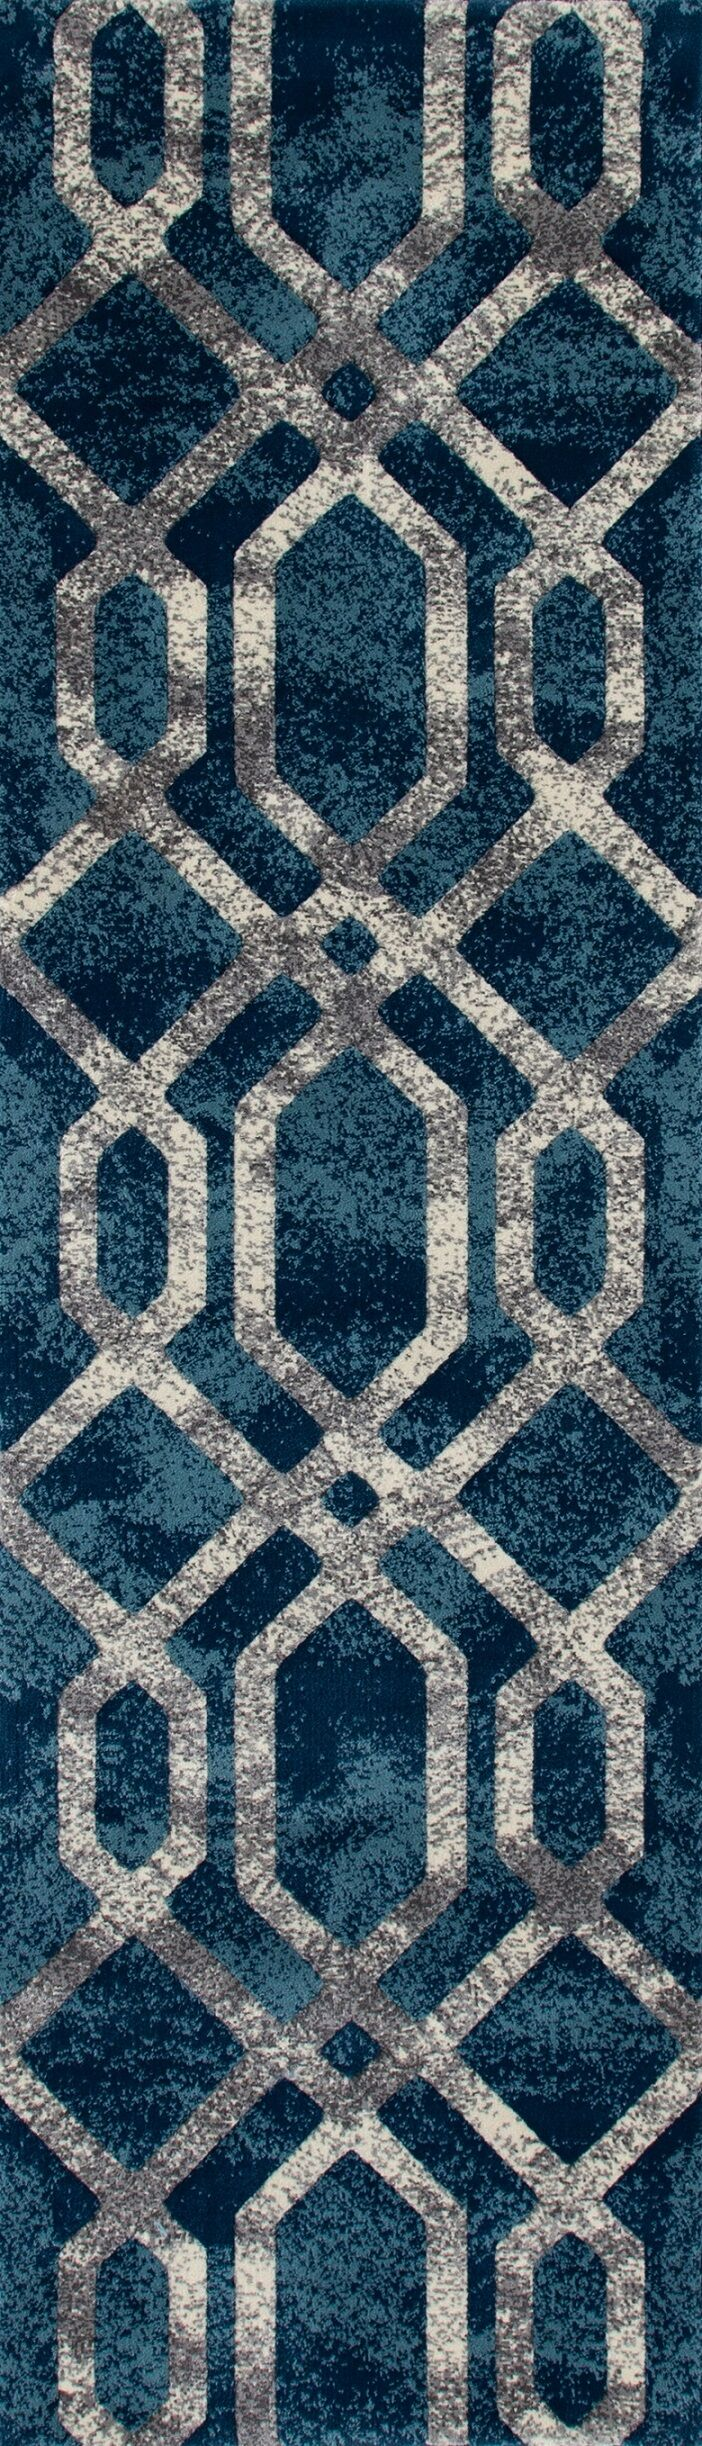 Delanie Blue And Silver Area Rug Rug Size: Runner 2'2